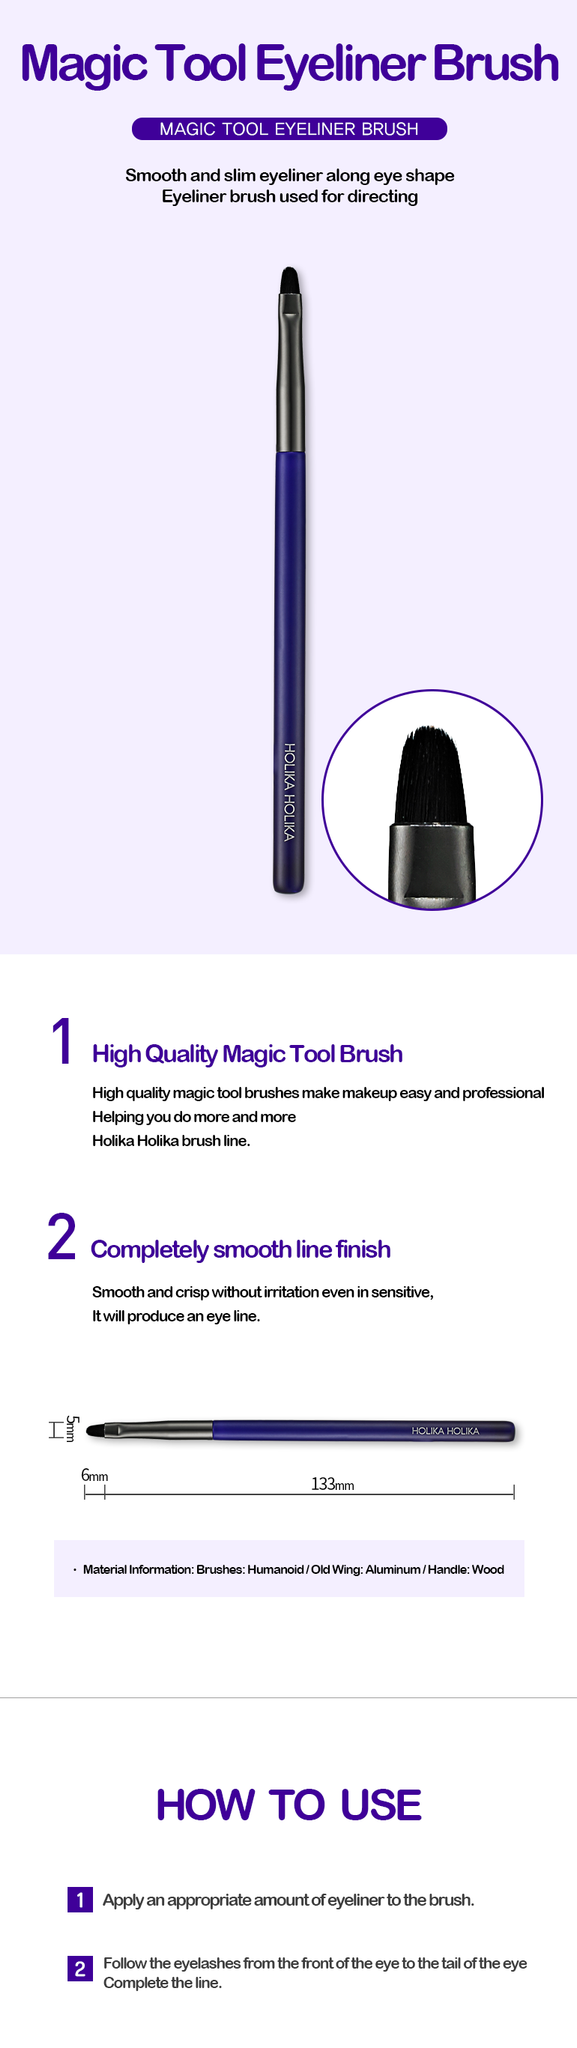 Eyeliner Brush | Magic Tool Eyeliner Brush